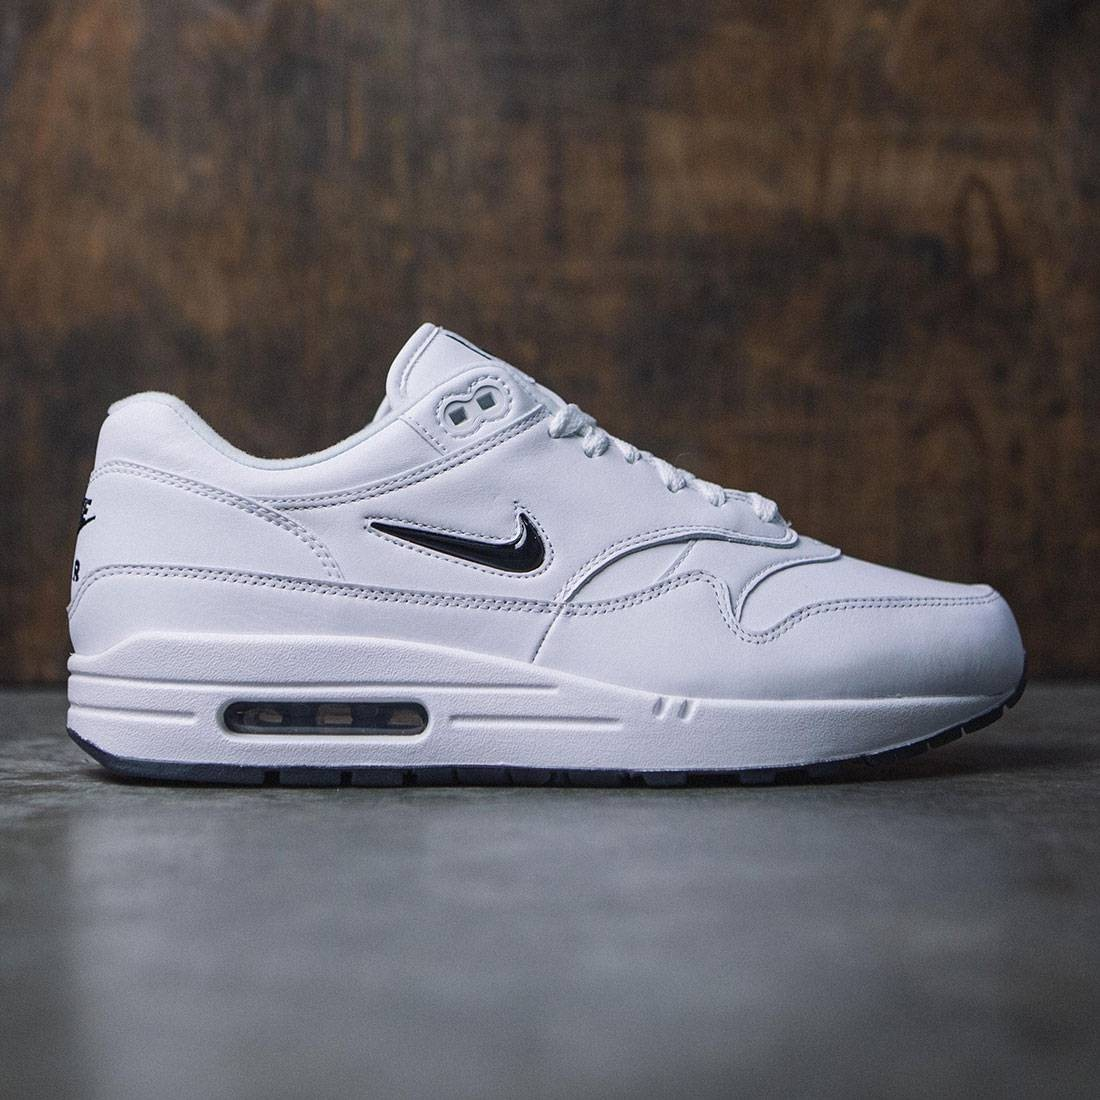 White Nike Jewel 1 Premium Sc Black Air Max Crown 35Rjq4AL